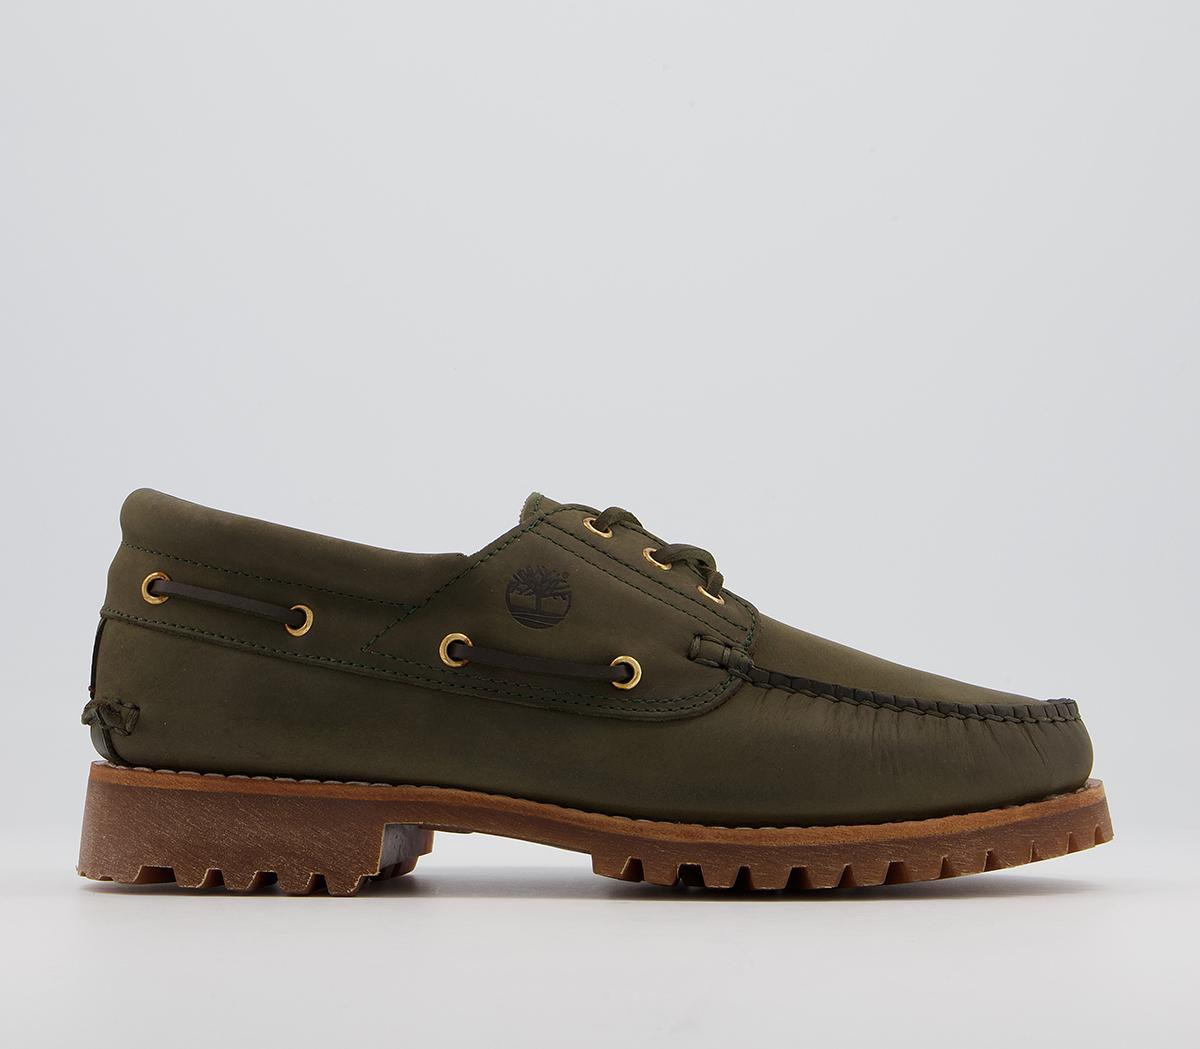 Authentic 3 Eye Boat Shoes